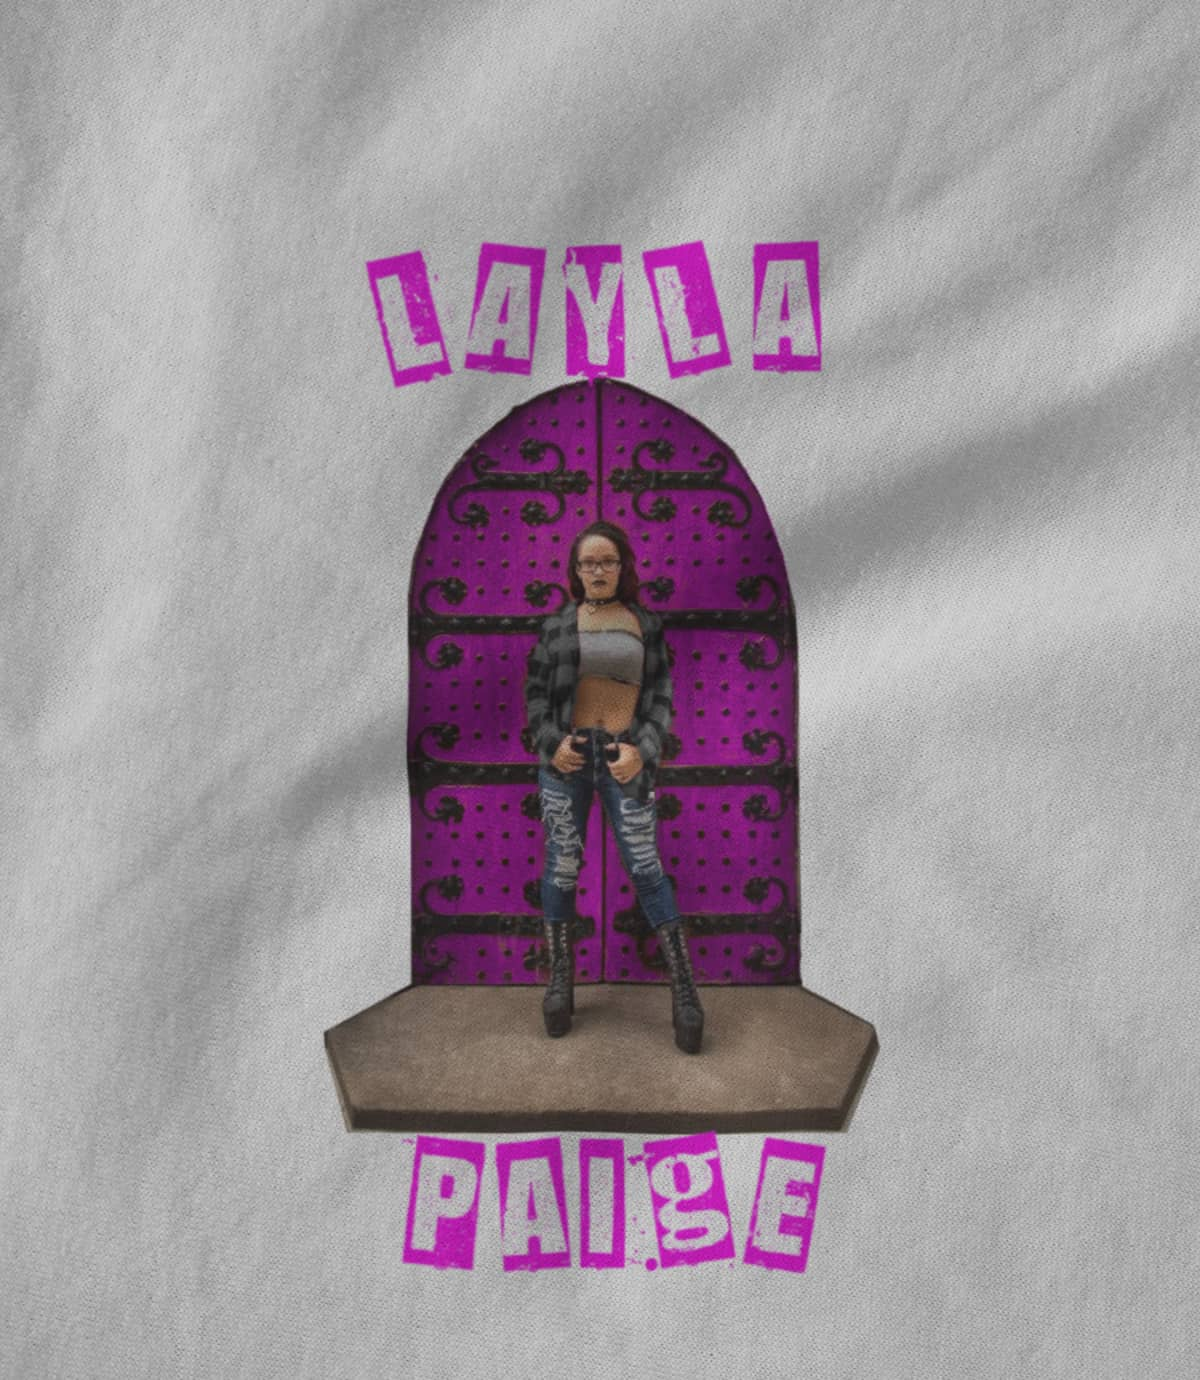 Layla paige the door 1598449001